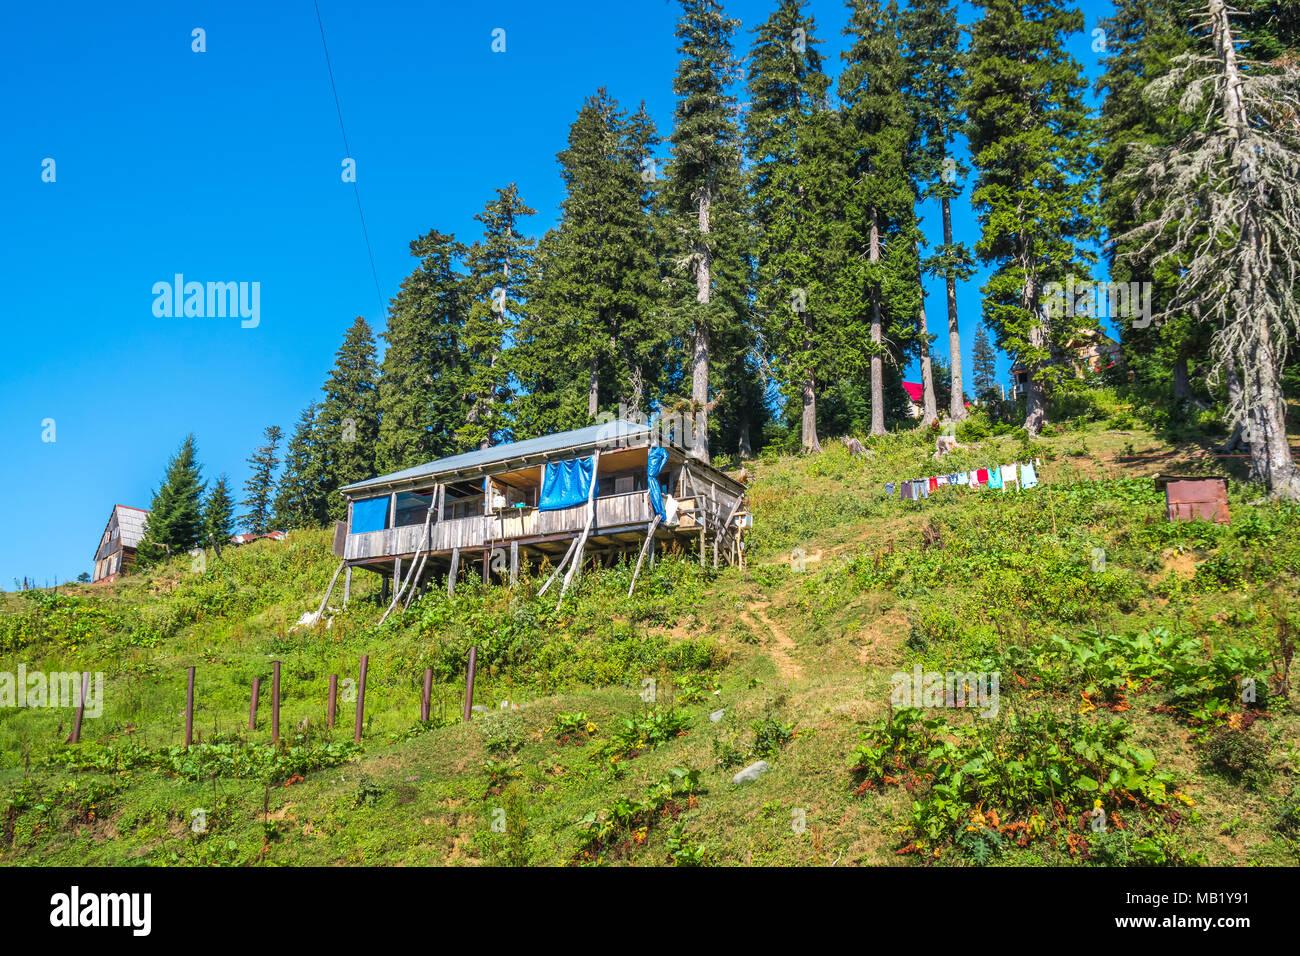 huts in bakhmaro village, one of the most beautiful mountain resorts